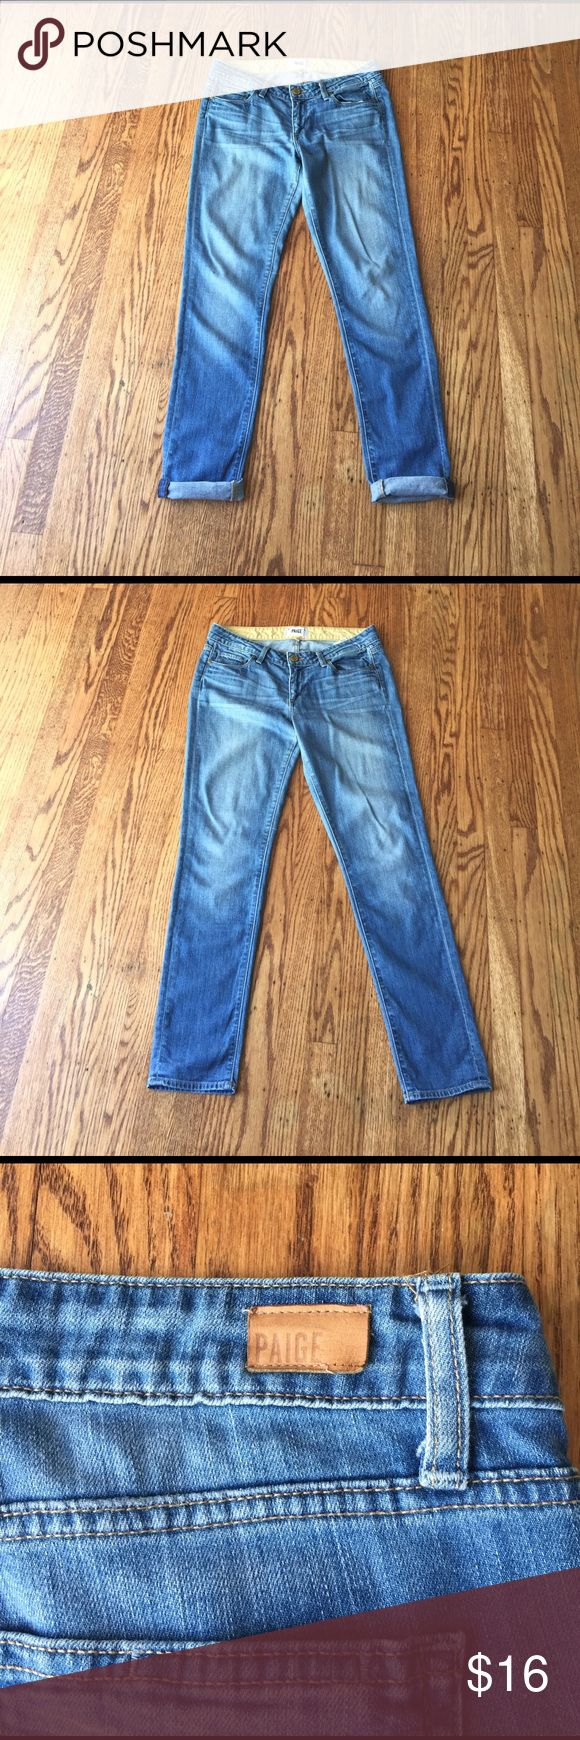 "🔥flash sale 🔥Paige Skyline Ankle Peg Jeans Inseam 30"" inches. Minor tear on the back label and small pen mark on the right leg (see pictures). Size 28 Paige Jeans Jeans"